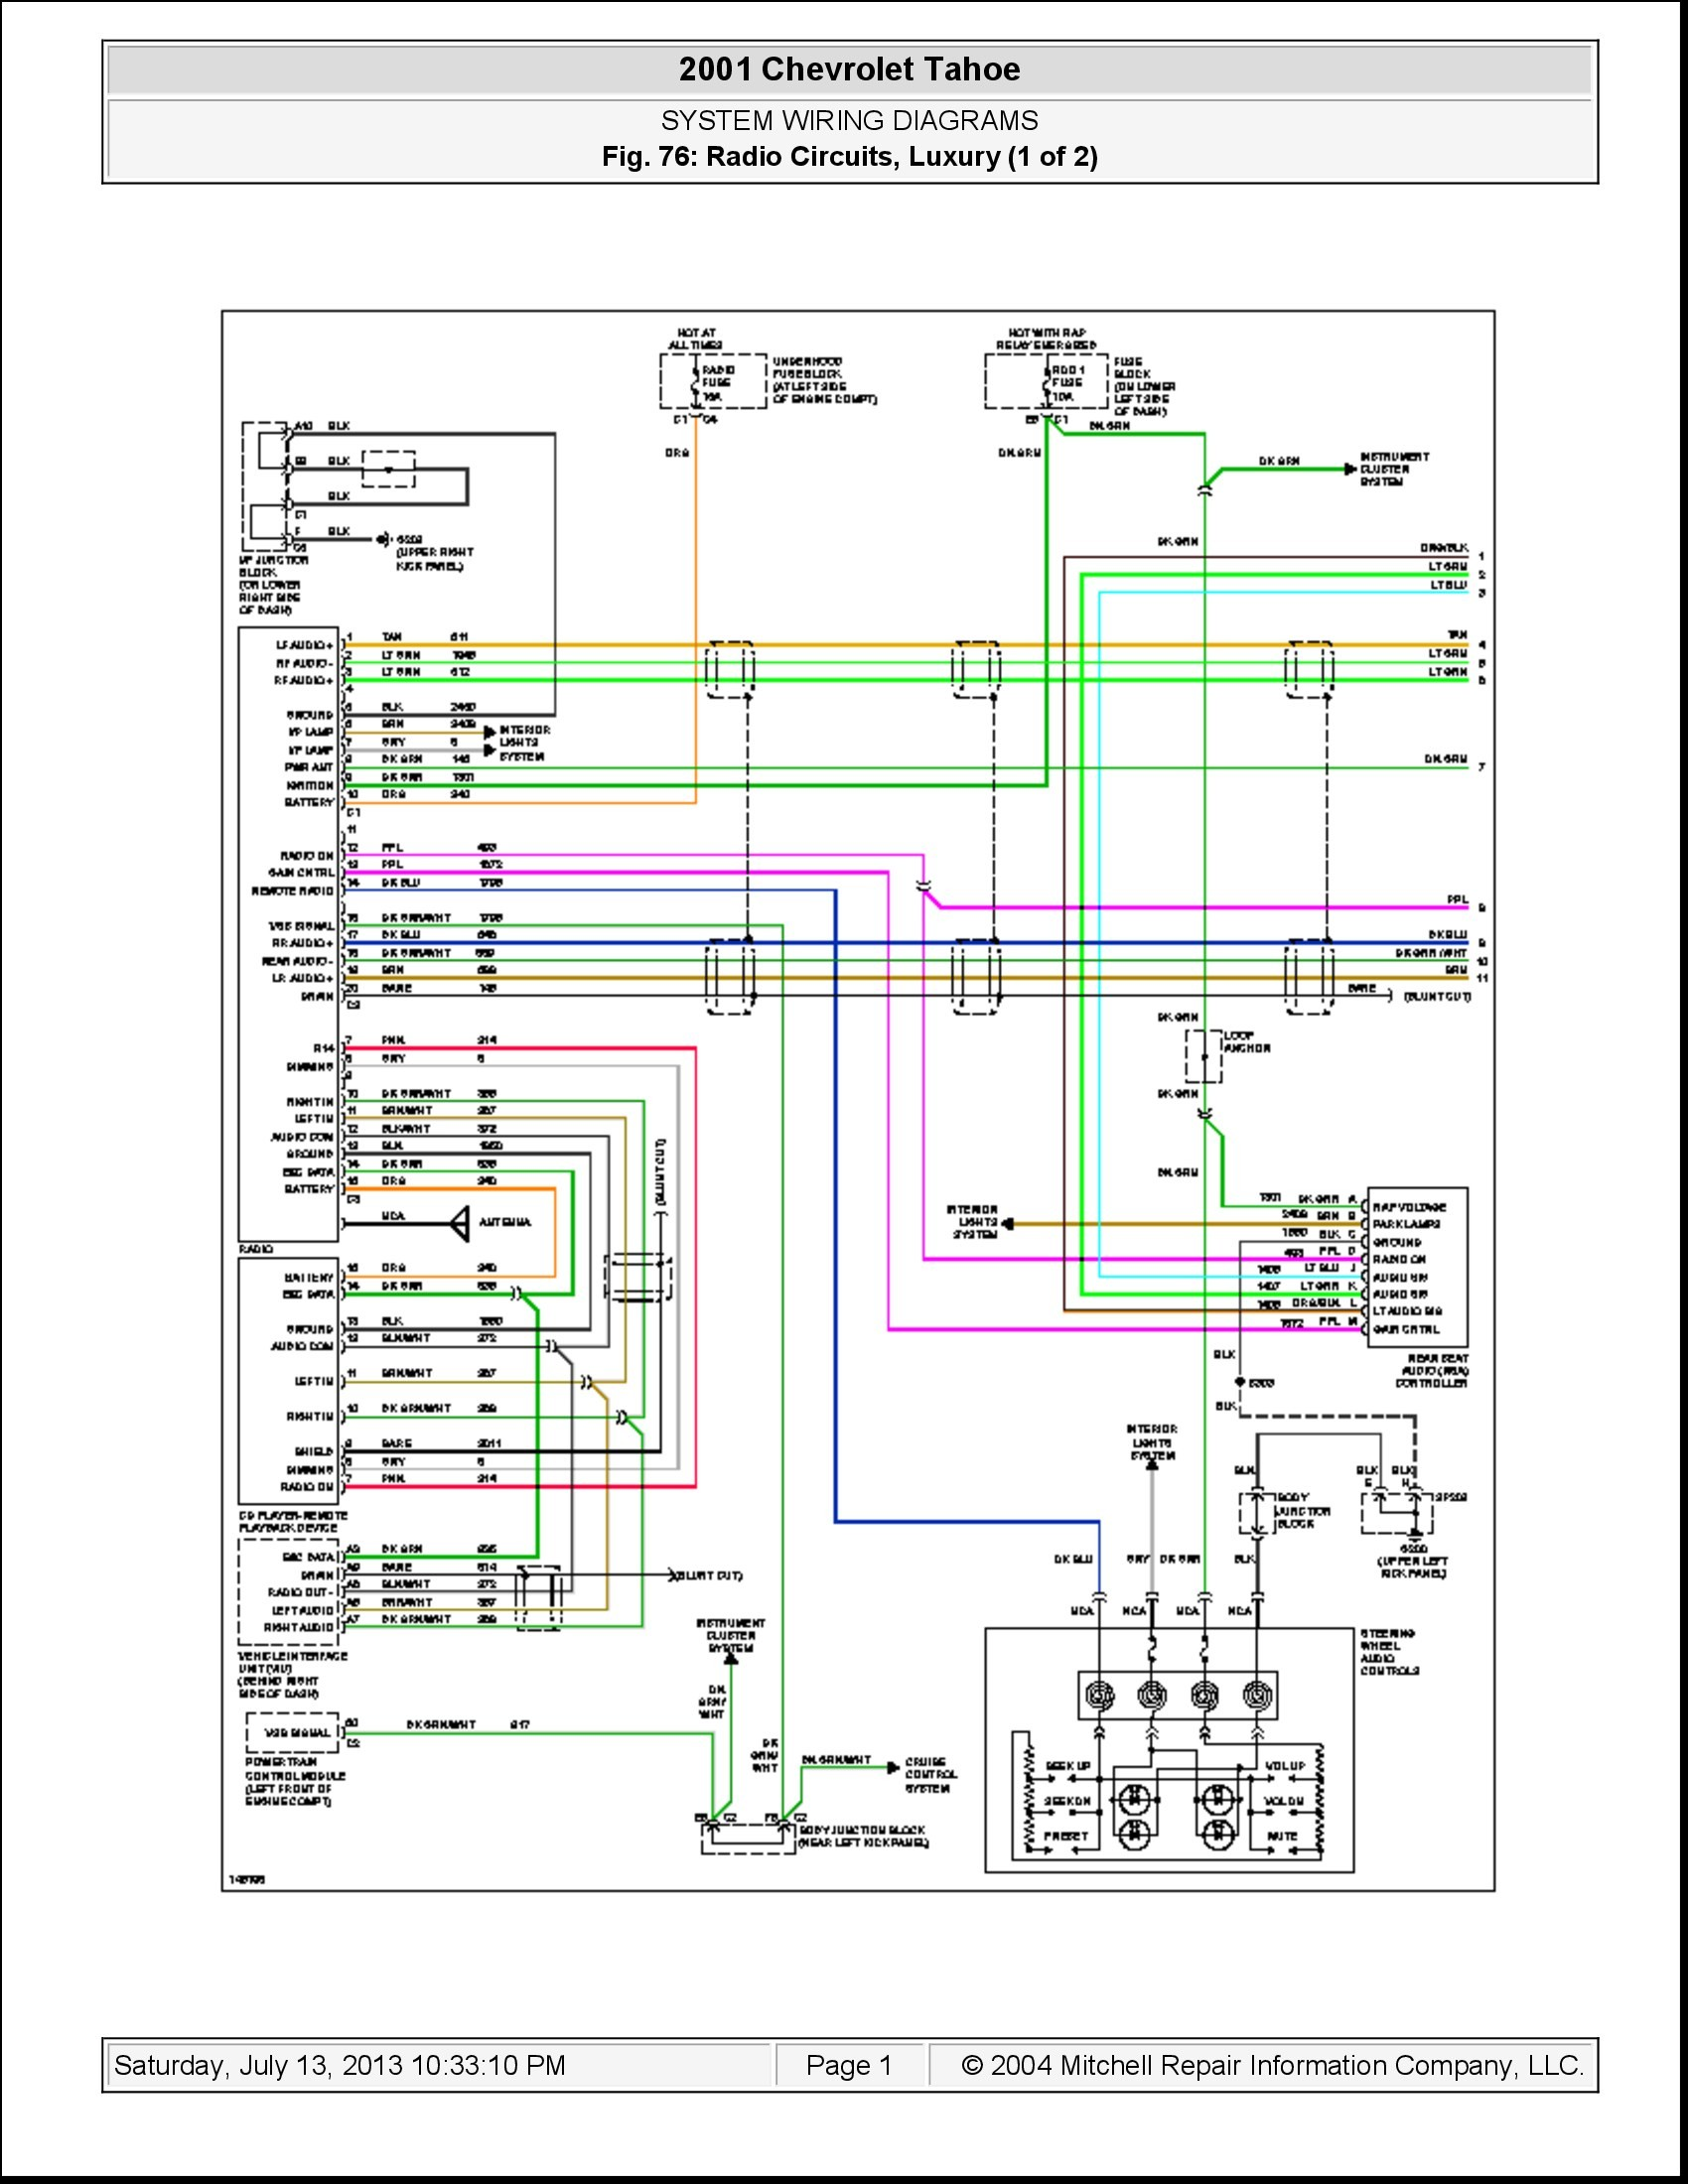 Chevy Venture Wiring Diagram Awesome Gm Radio Wiring